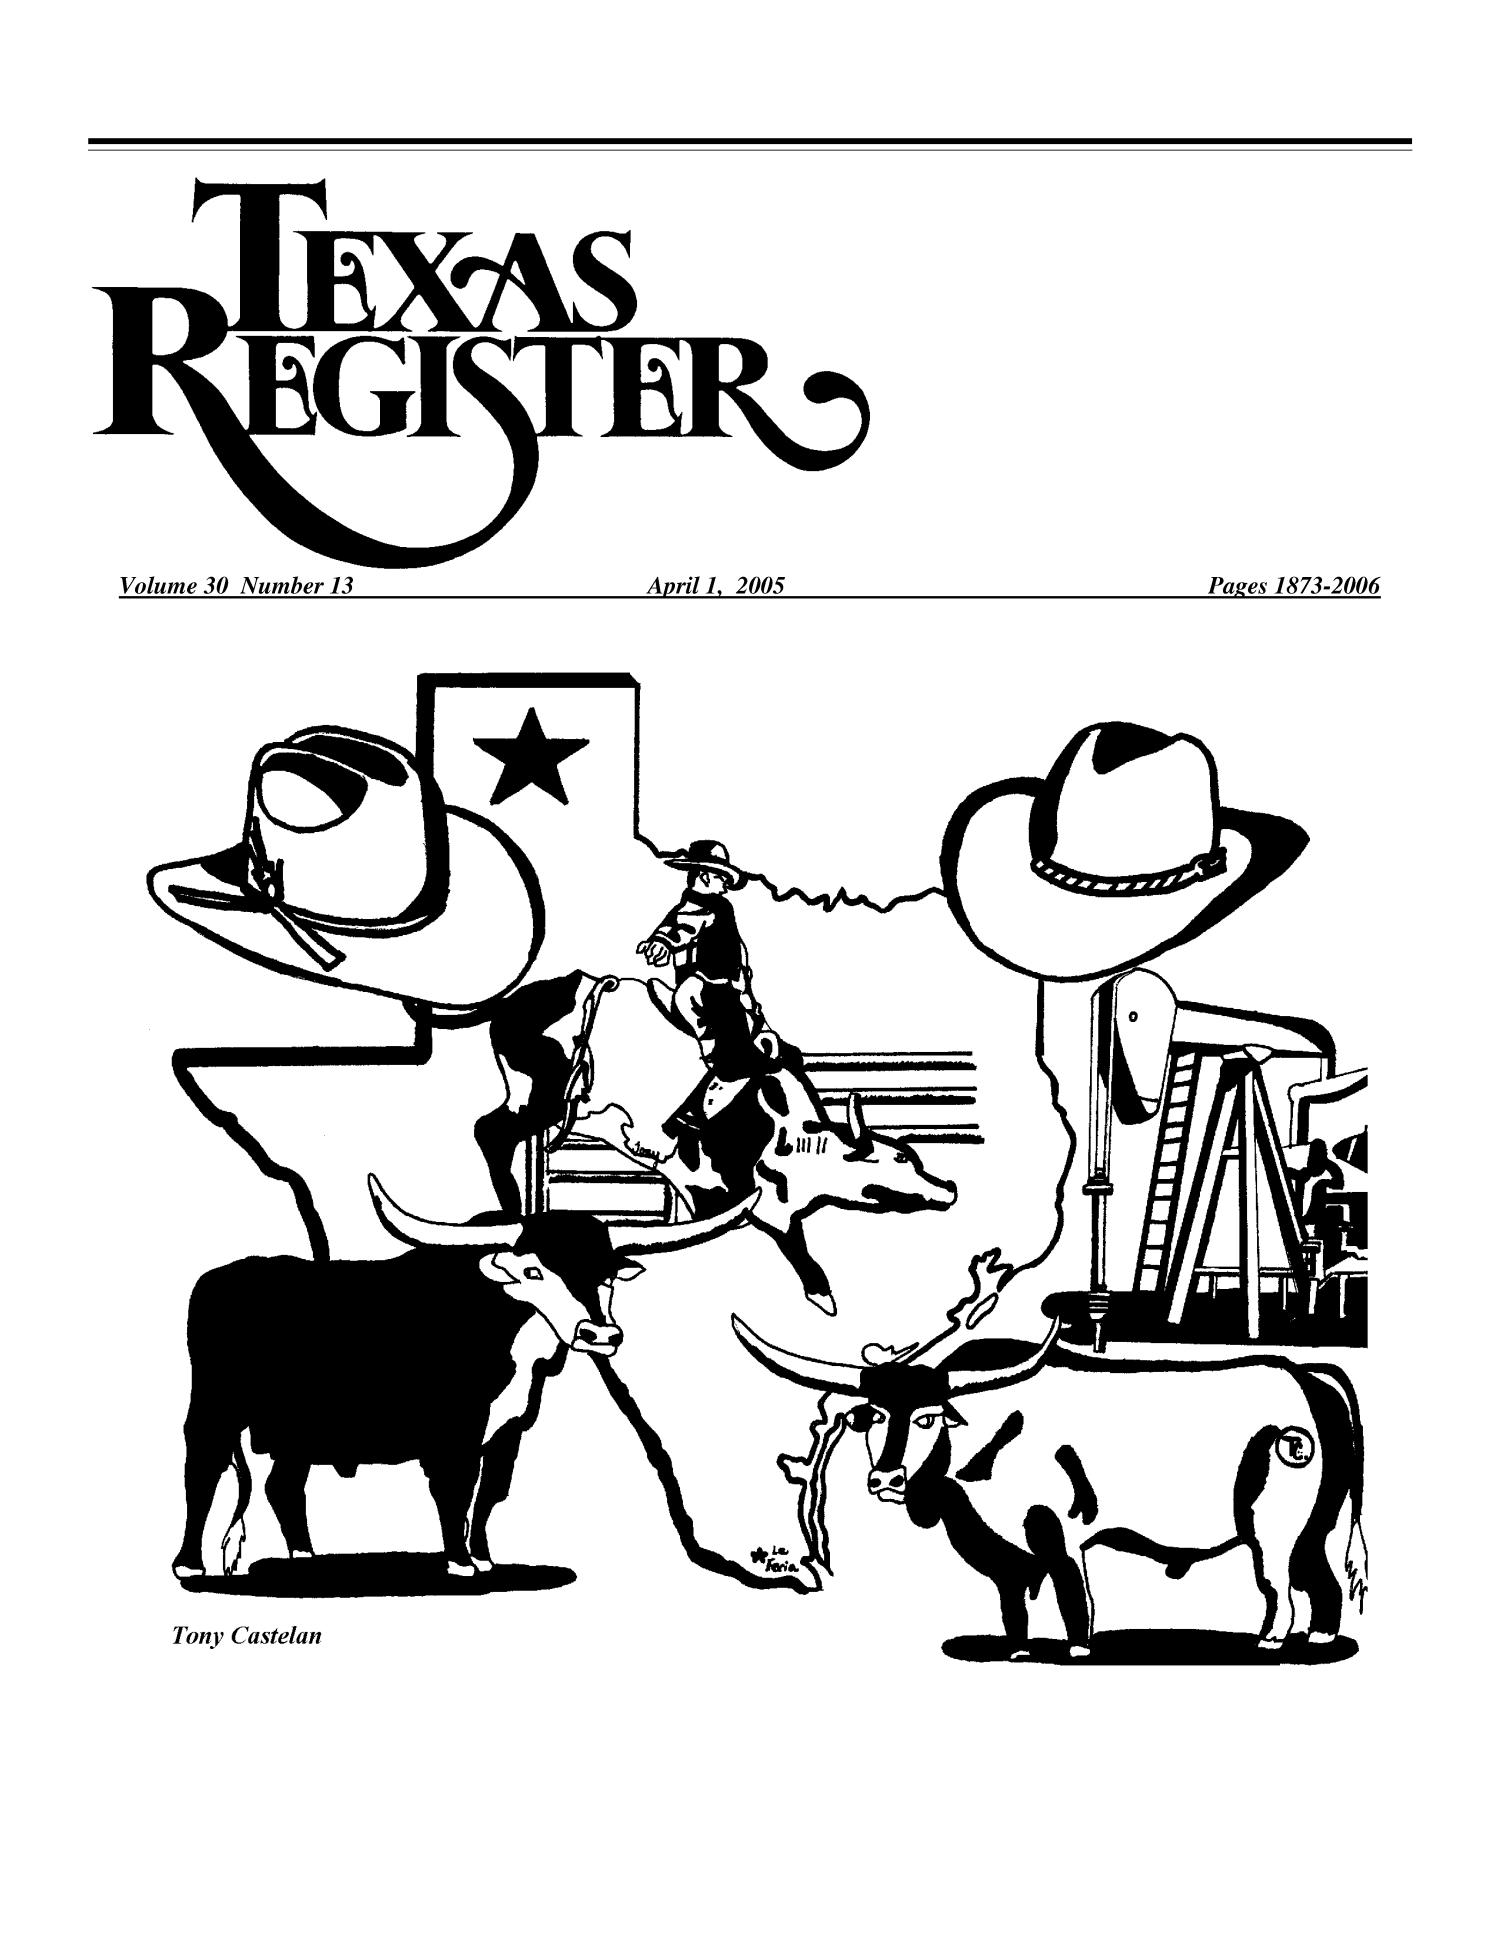 Texas Register, Volume 30, Number 13, Pages 1873-2006